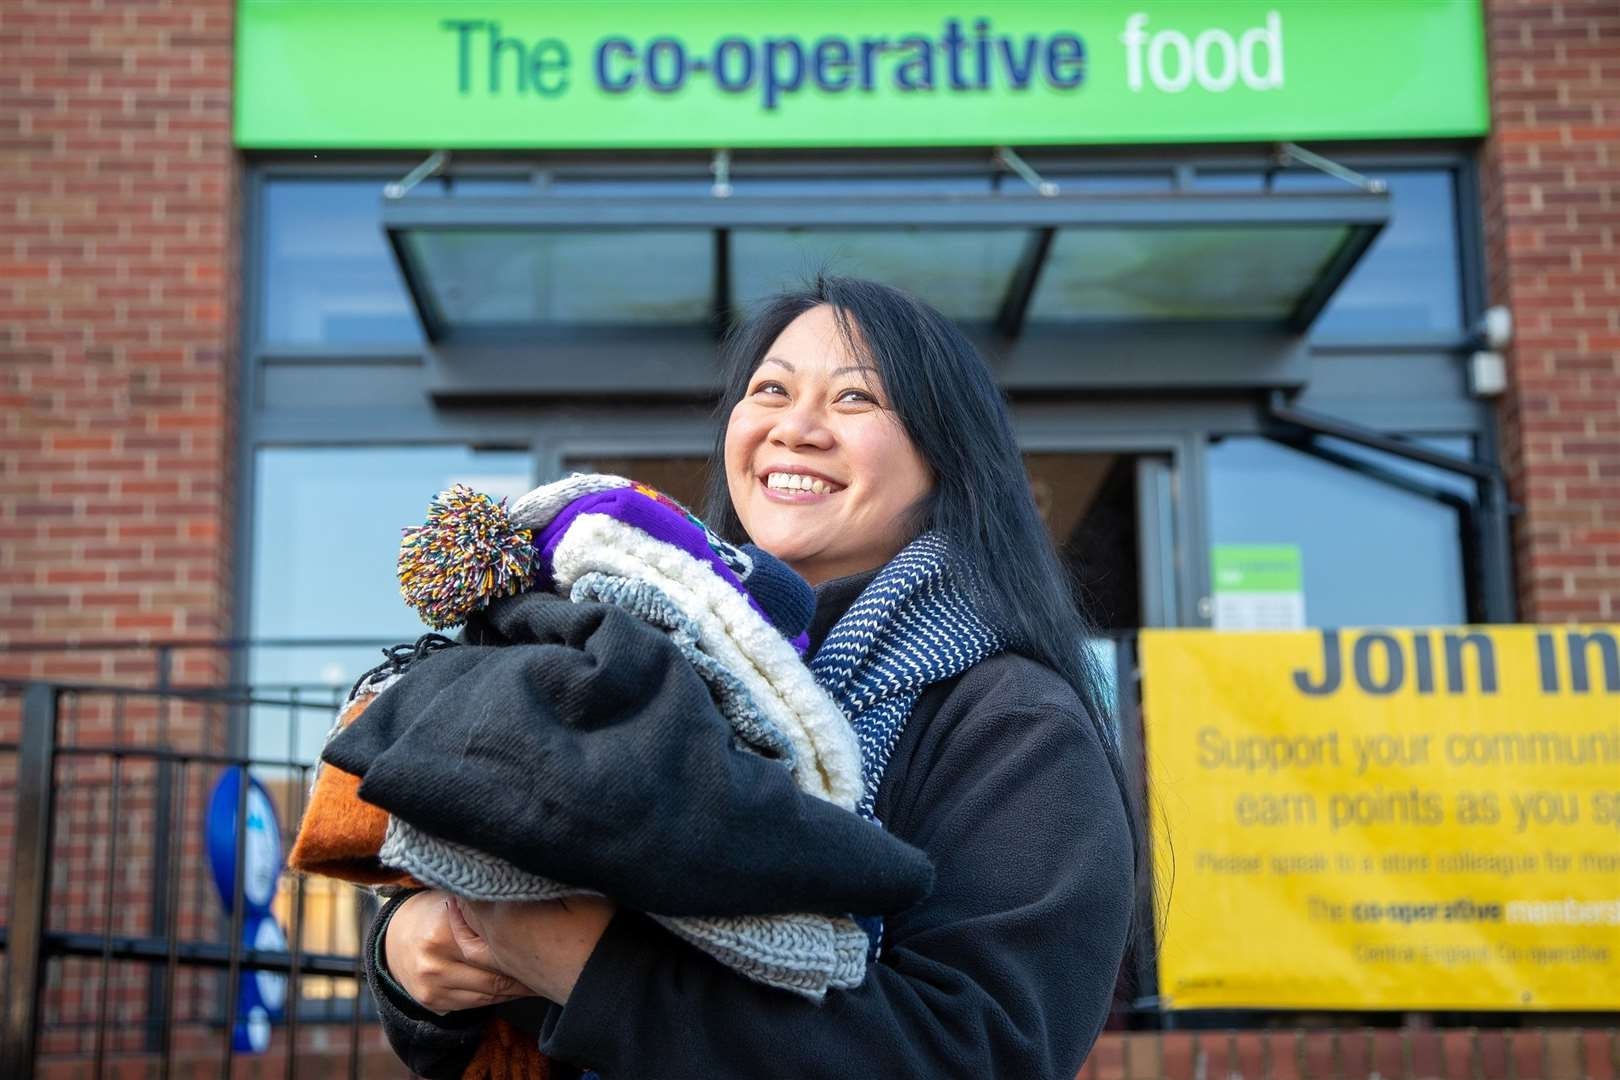 Central England Co-op has donated over 300 warm clothing packs to four good causes to help the homeless survive the winter weather. (43418588)